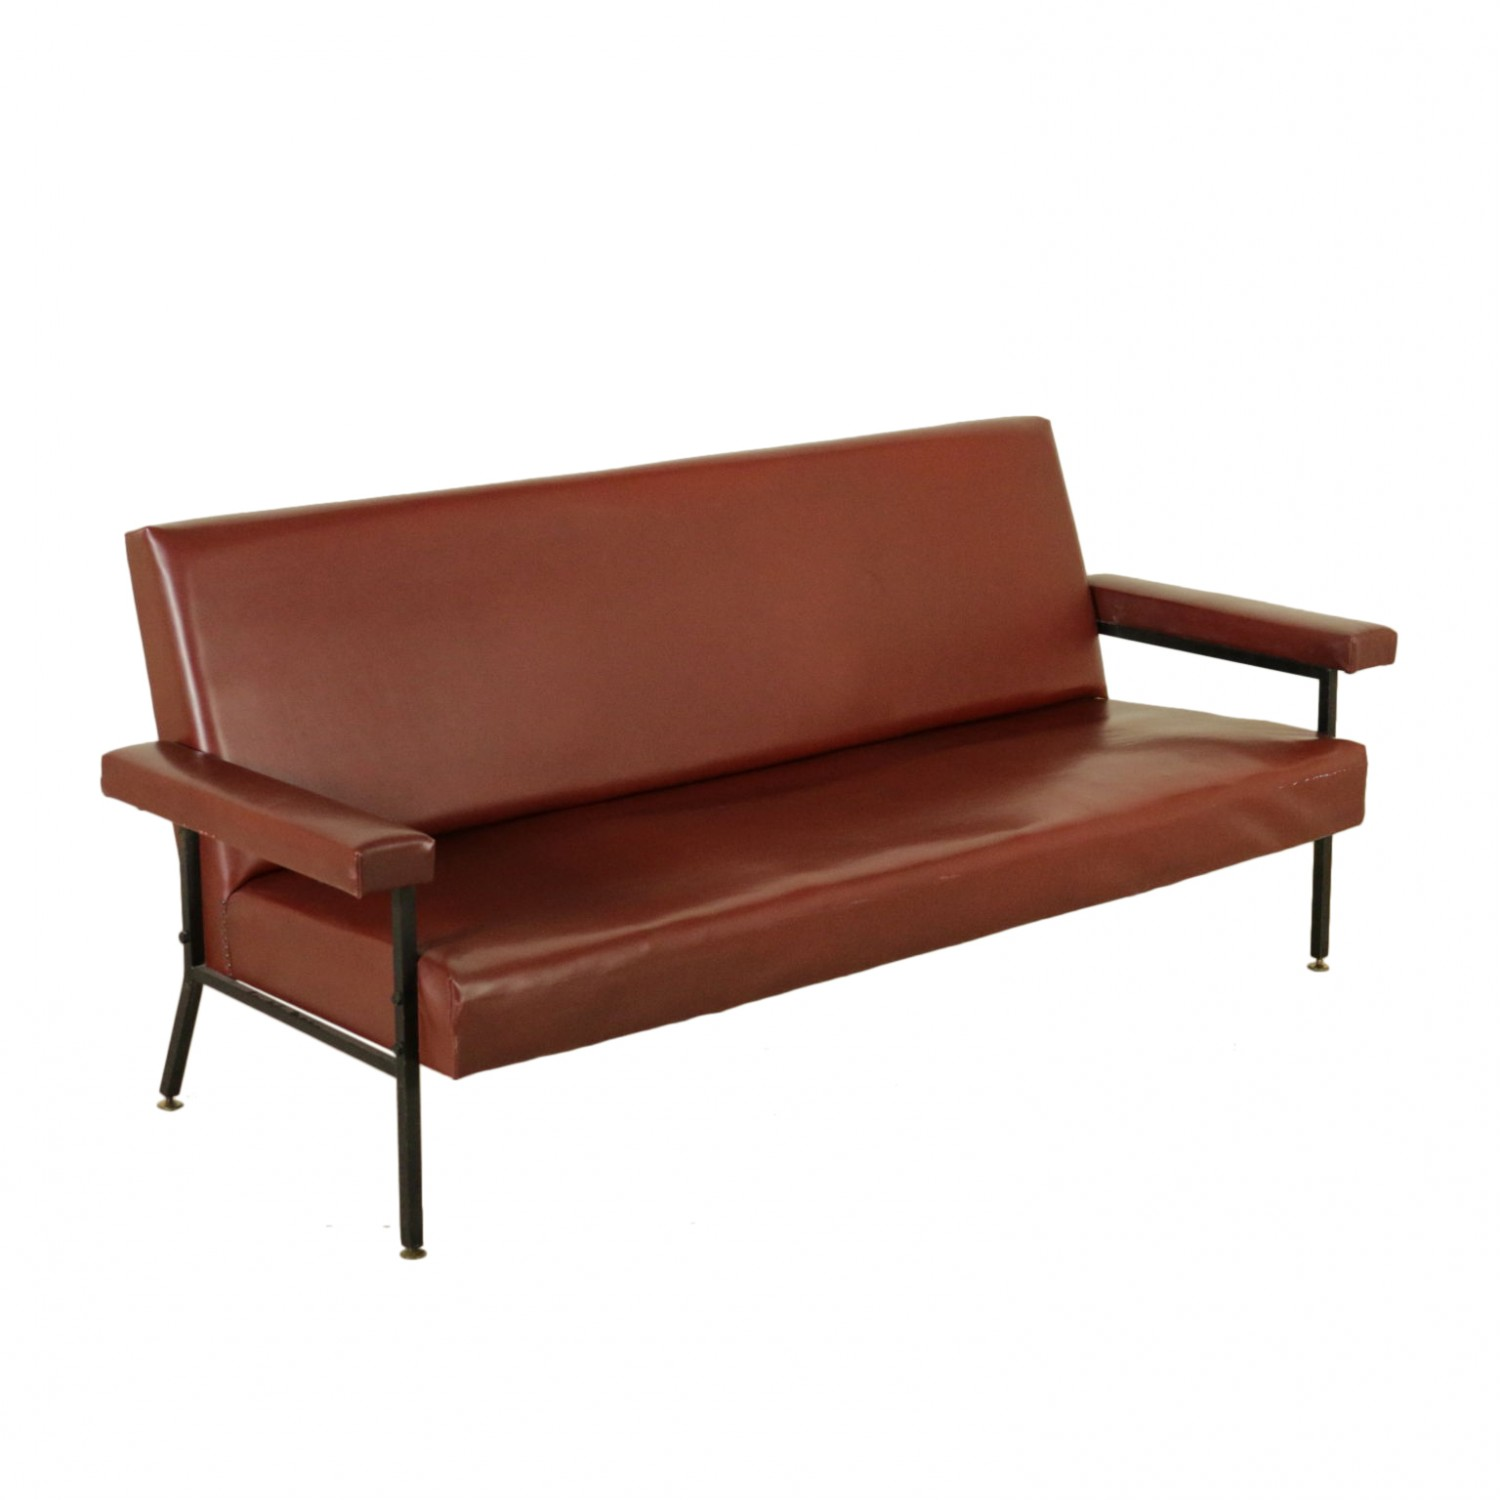 Sofa Leatherette Vintage Manufactured In Italy 1960s